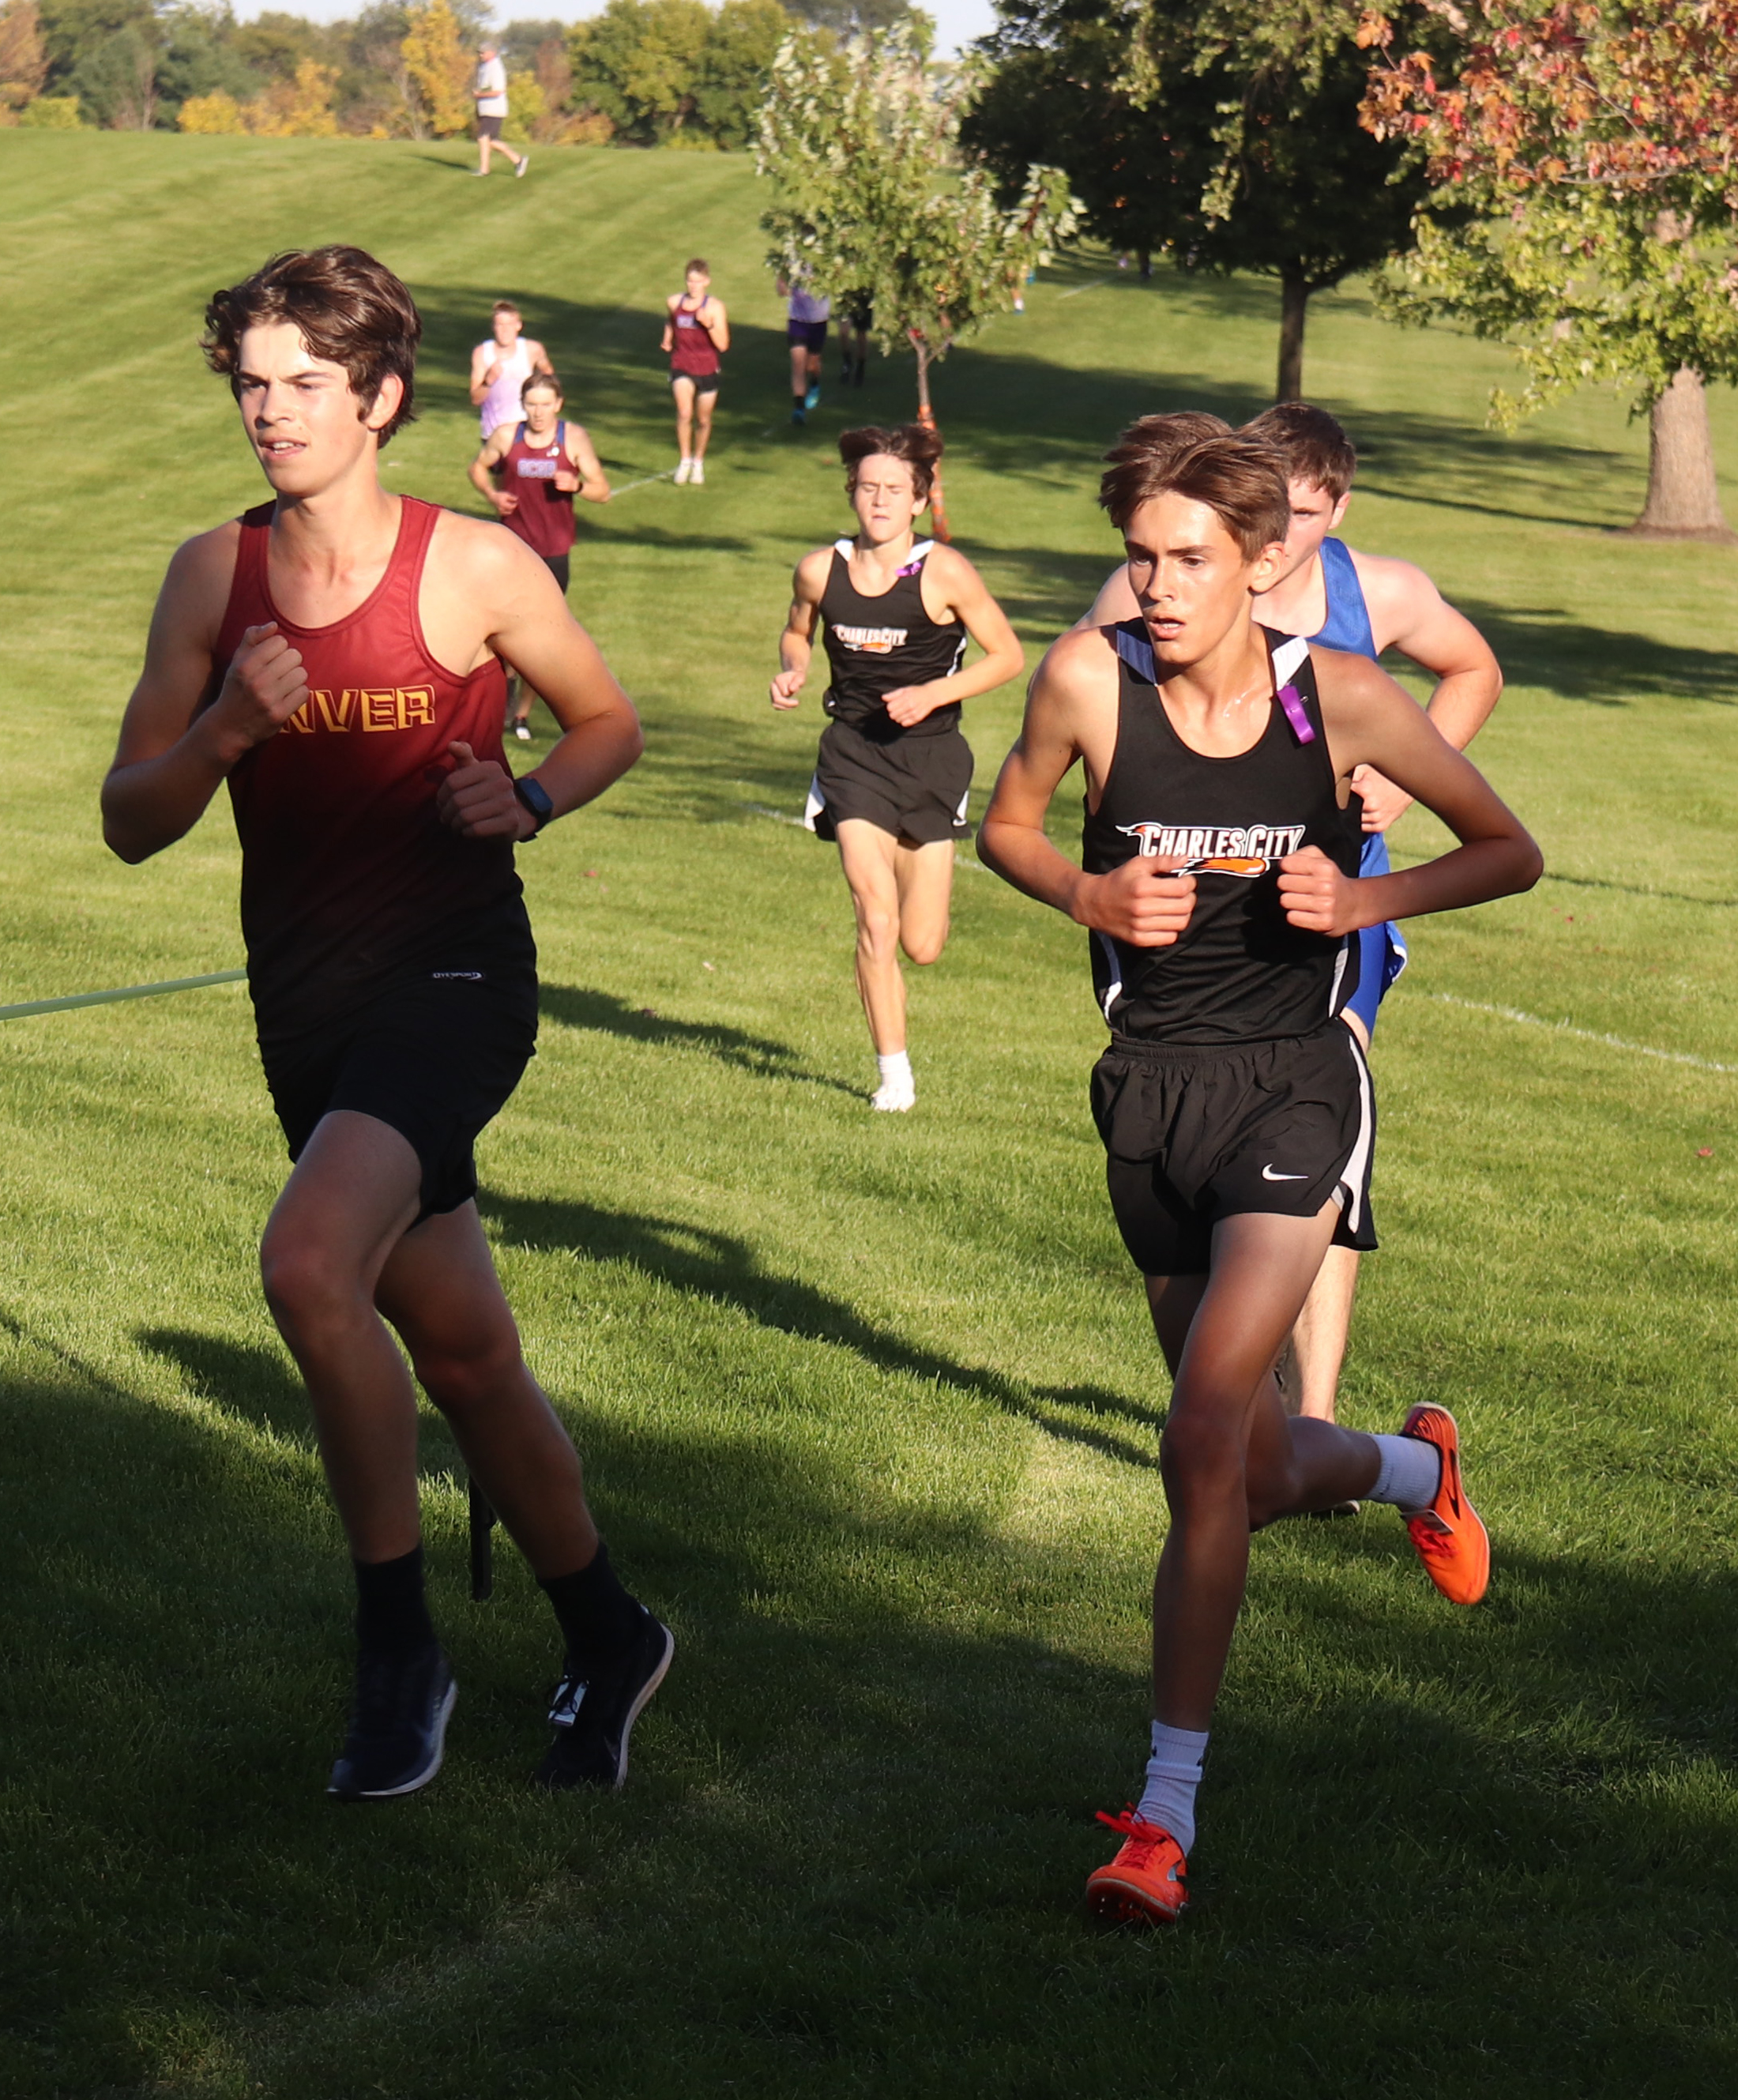 Charles City boys pace field at Sam Iverson XC Invitational for 2nd-straight win